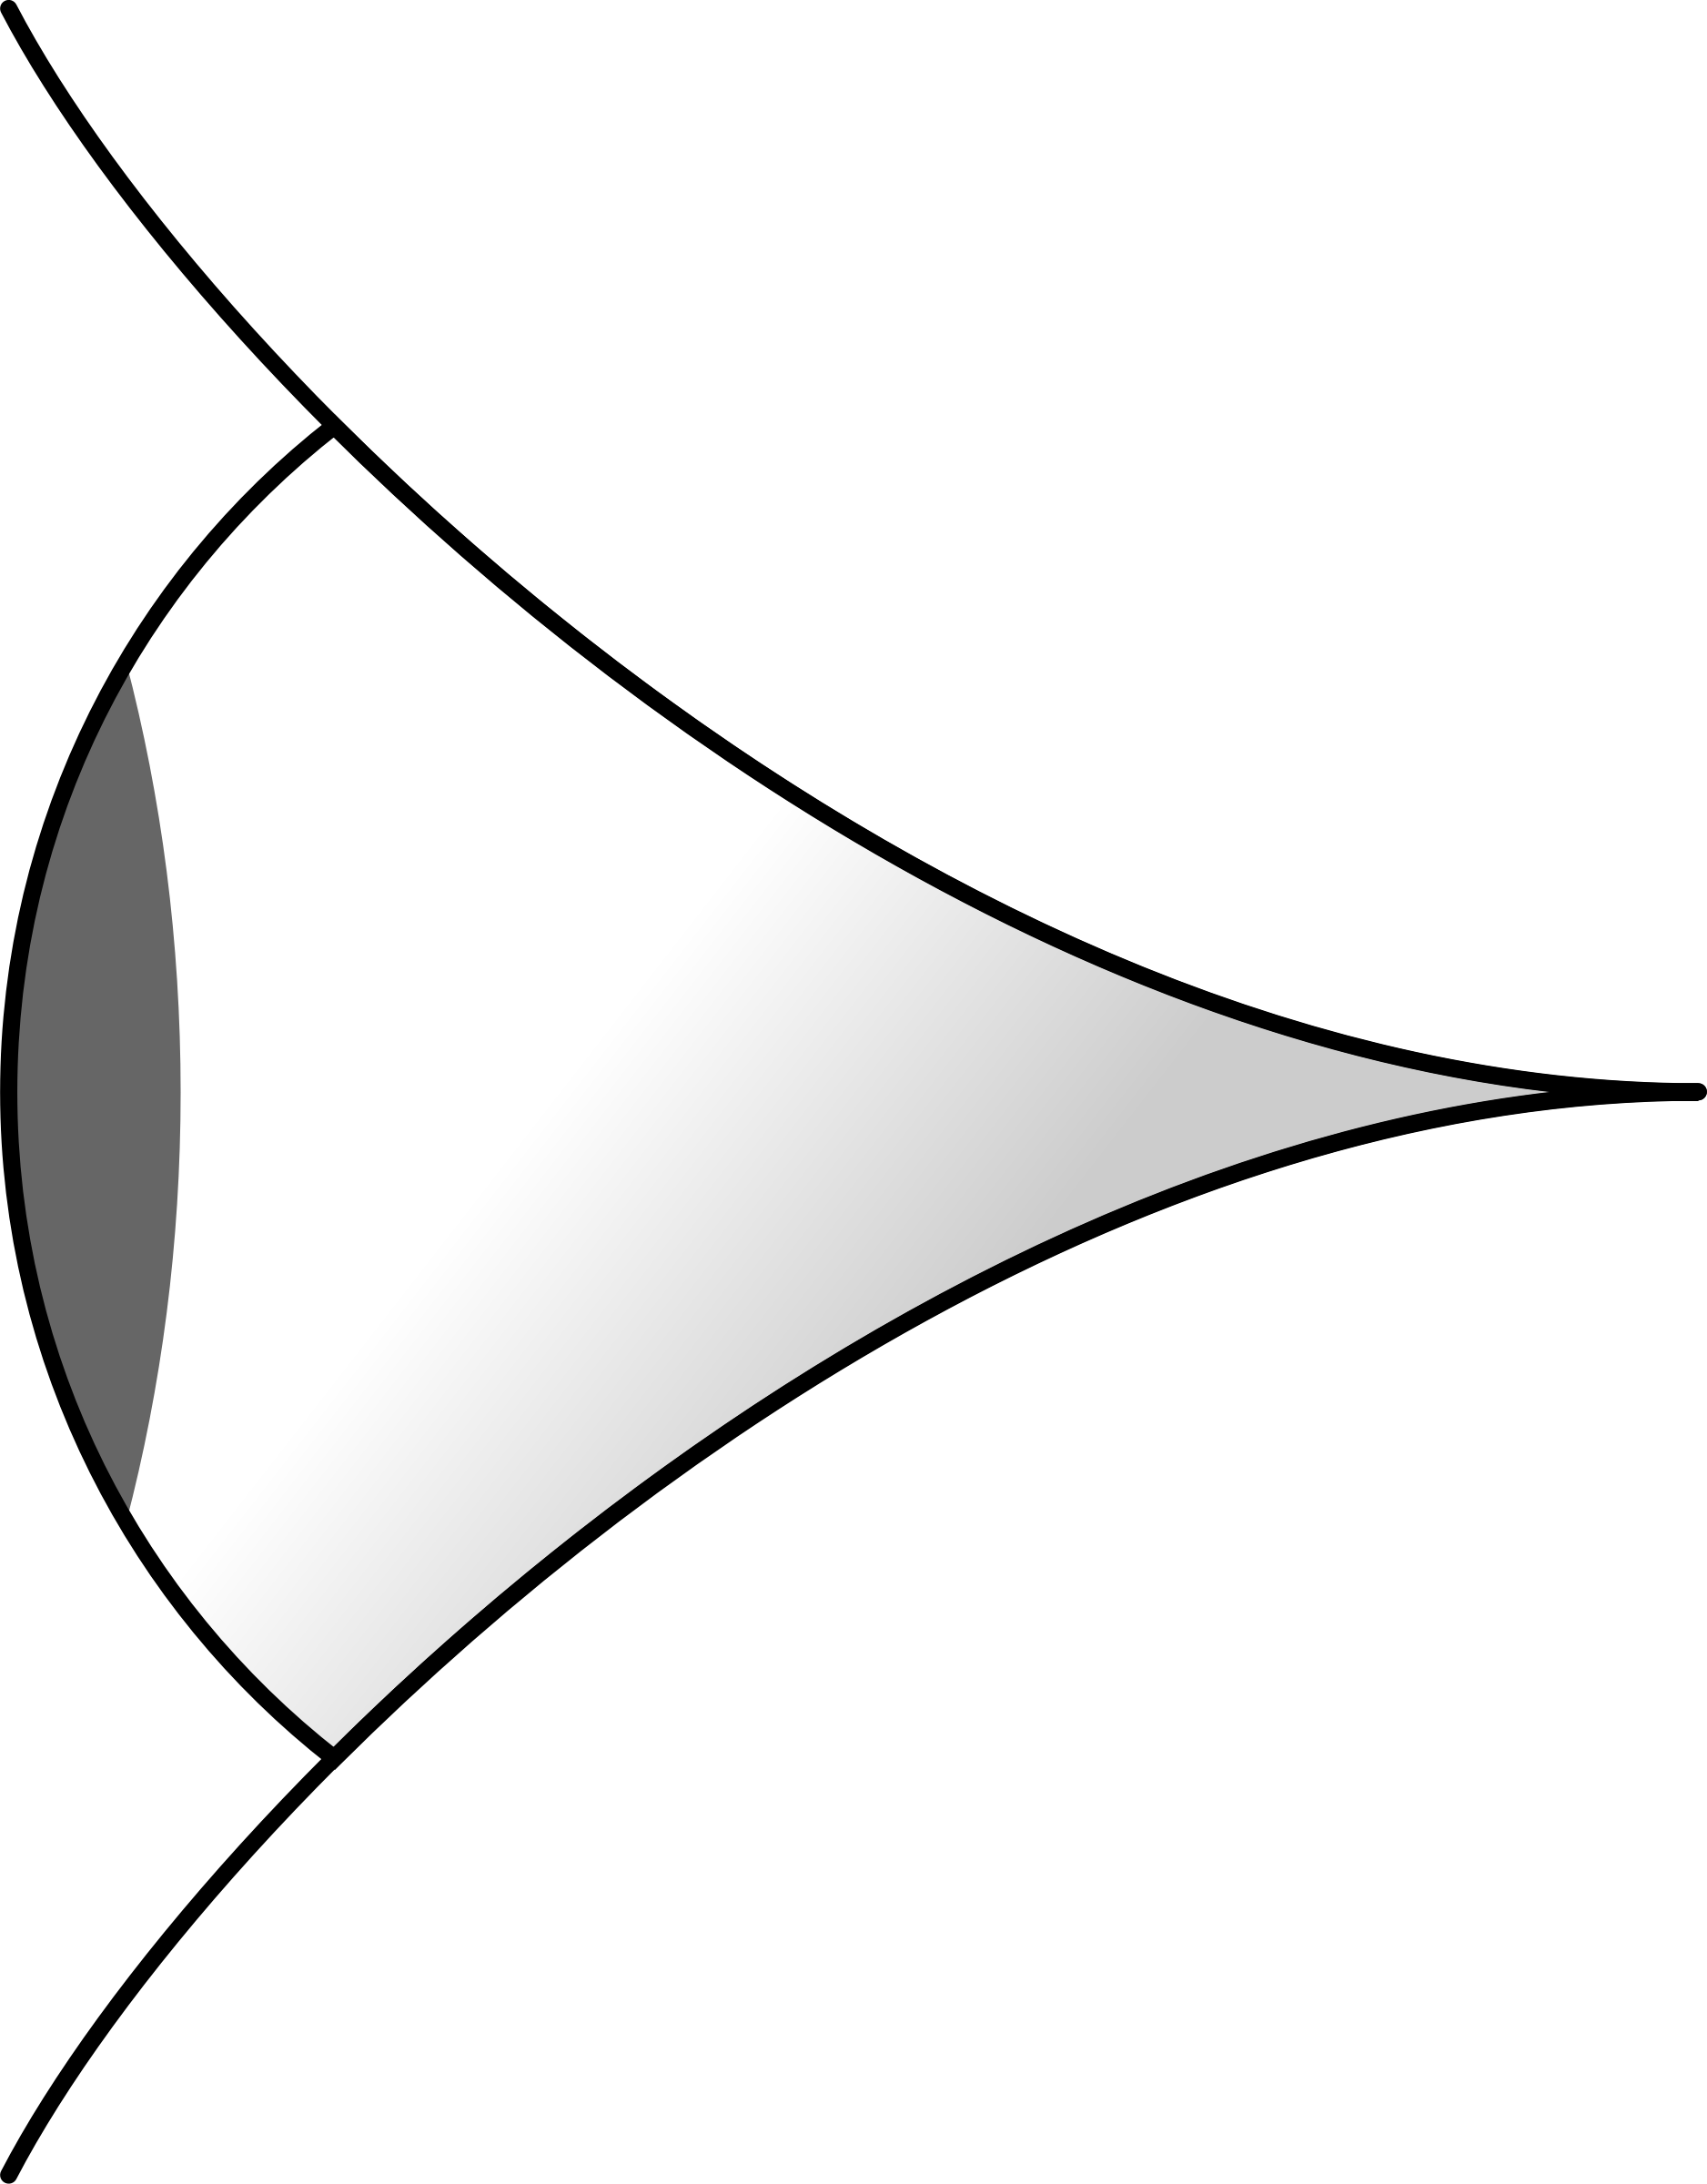 Side View Clipart.